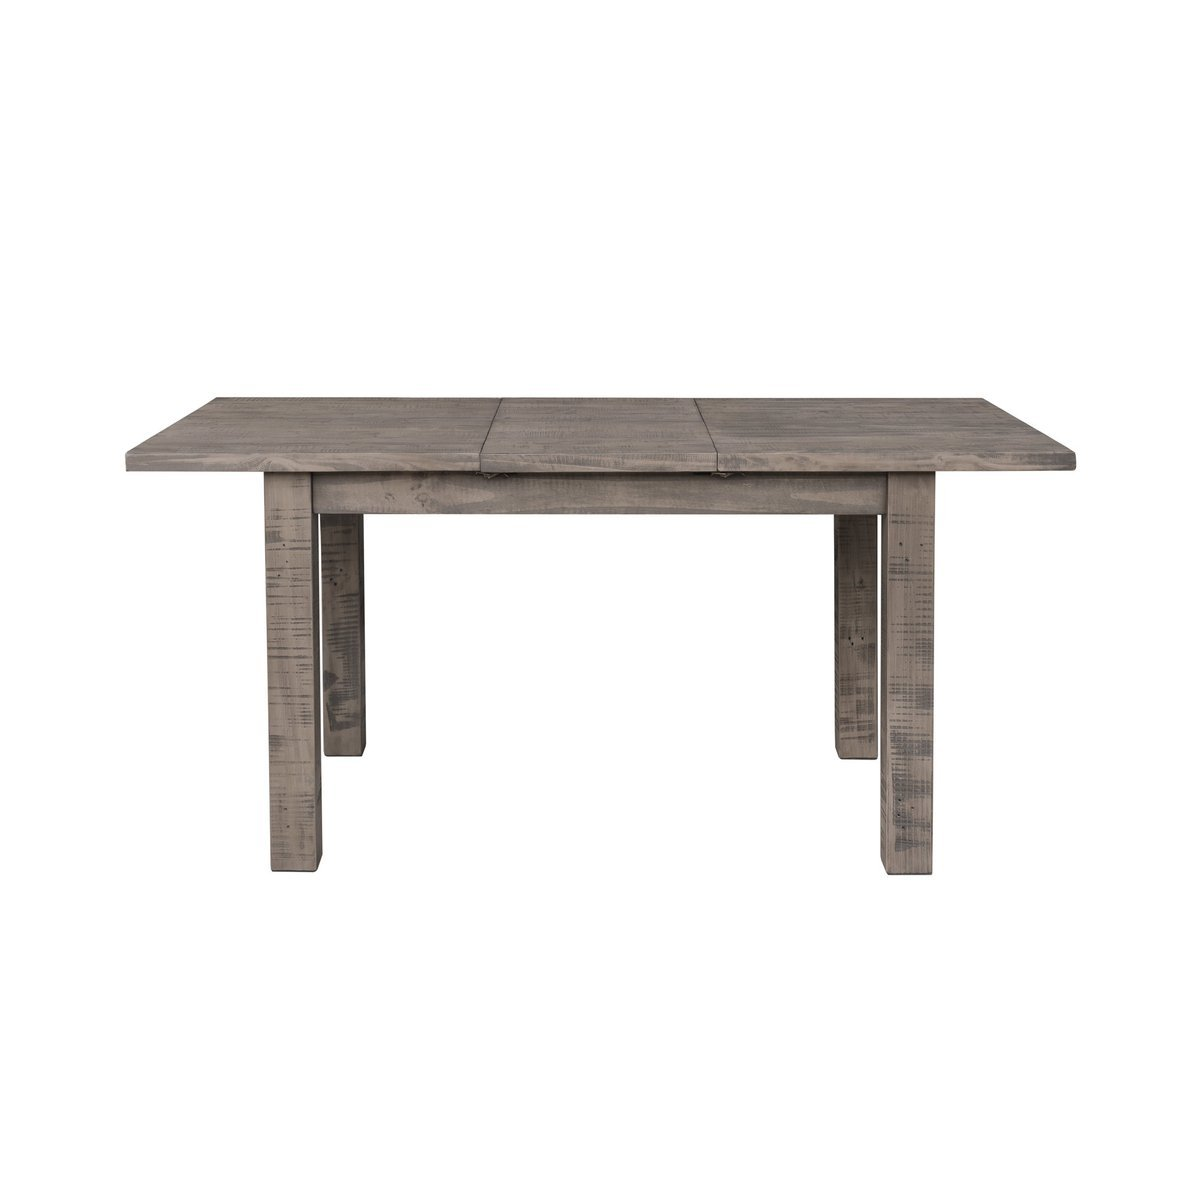 FERGUS SMALL EXTENSION DINING TABLE Tables Lh imports